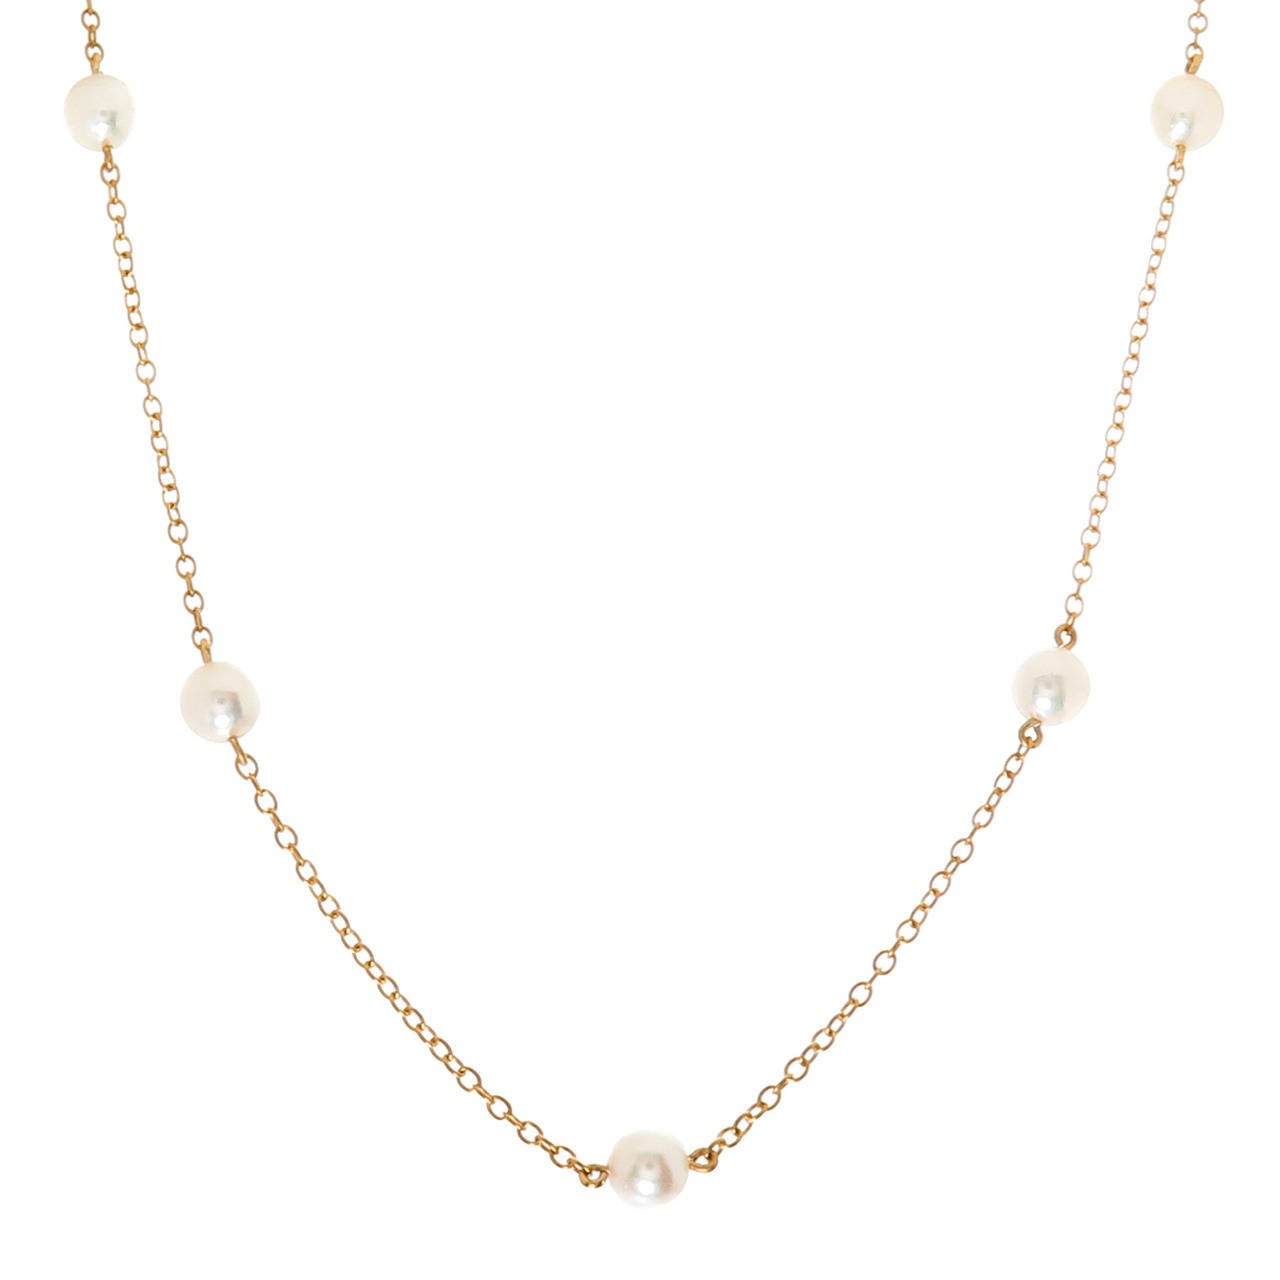 ffd9a89af Tiffany and Co. Elsa Peretti Pearls By the Yard Necklace at 1stdibs